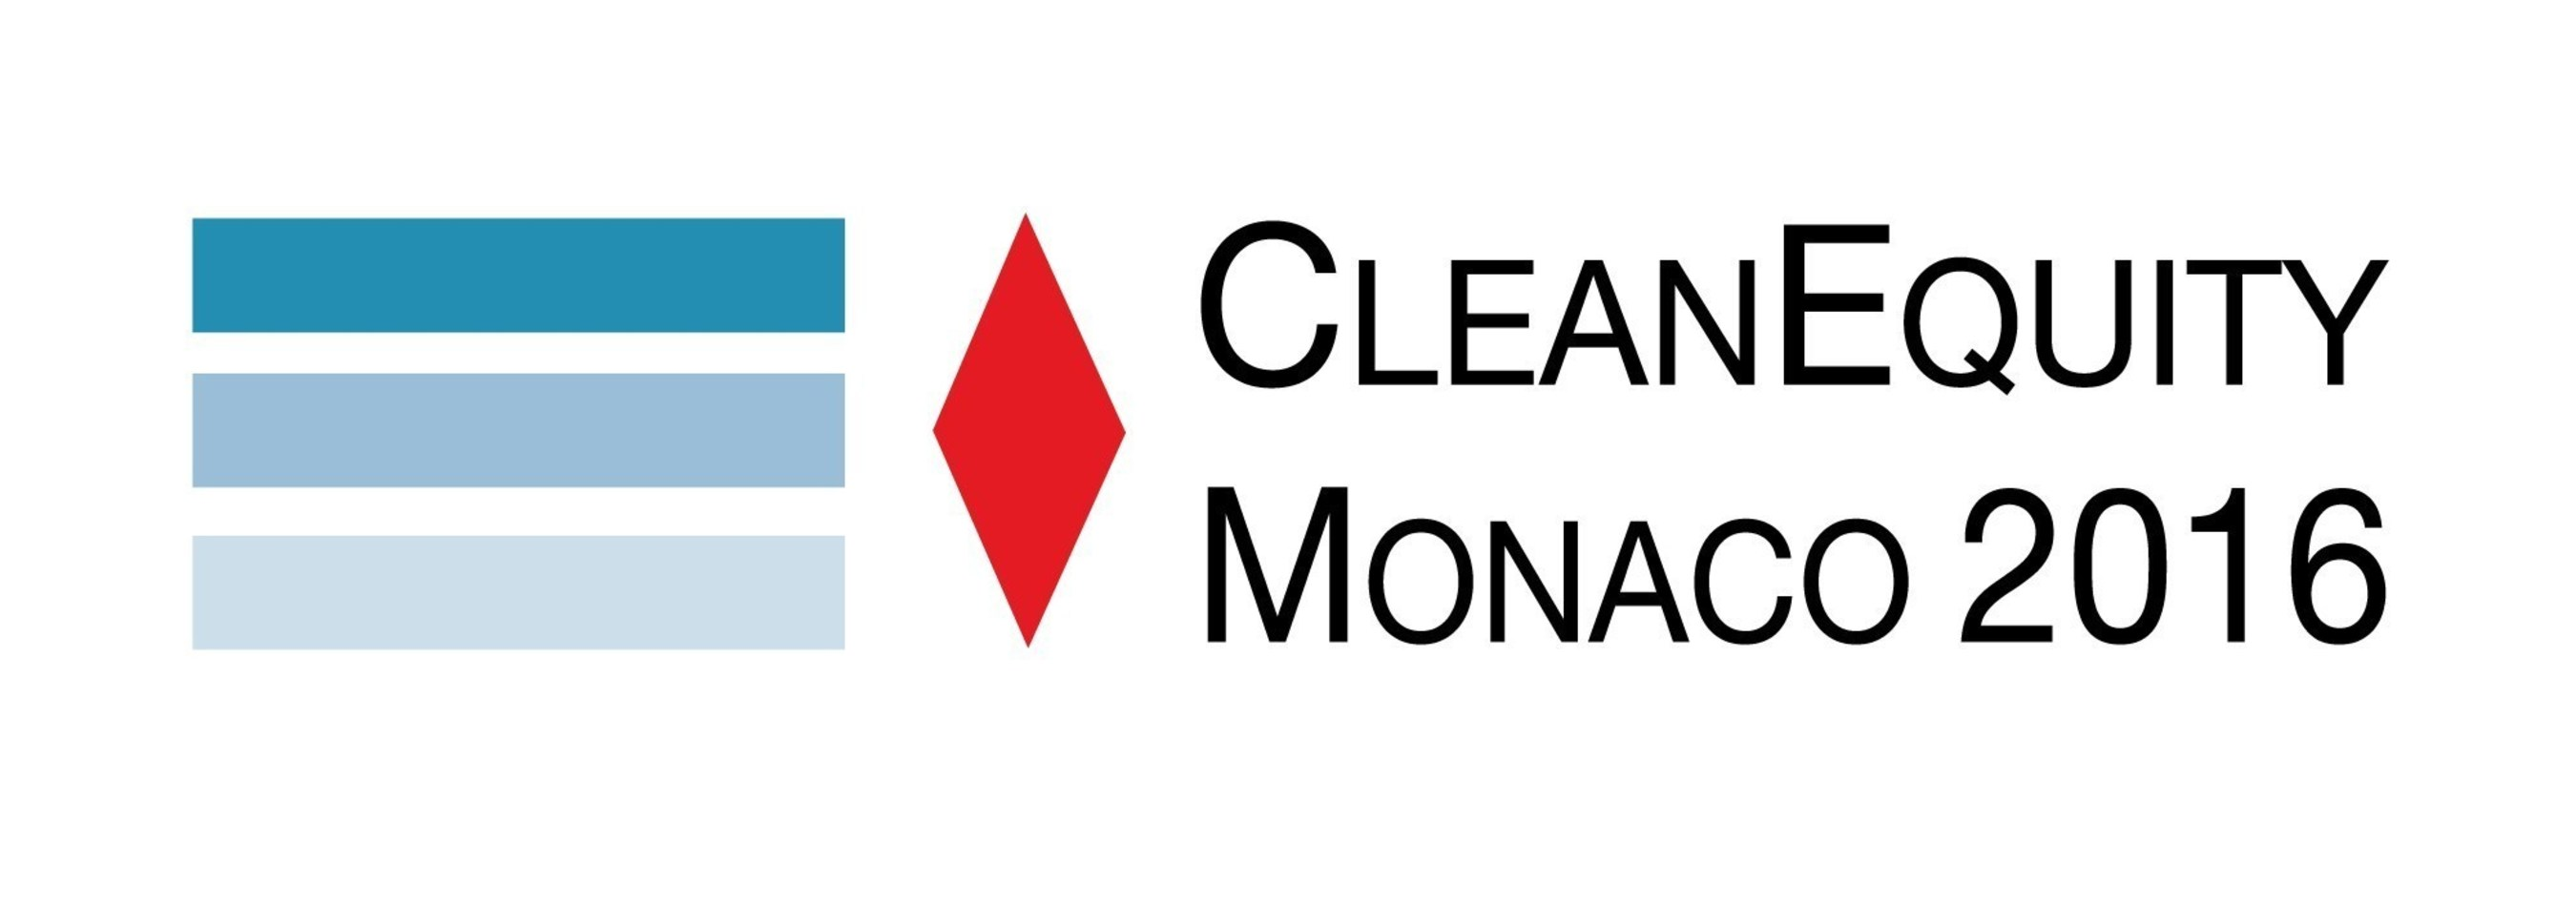 AlgaEnergy Selected to Present at CleanEquity Monaco 2016